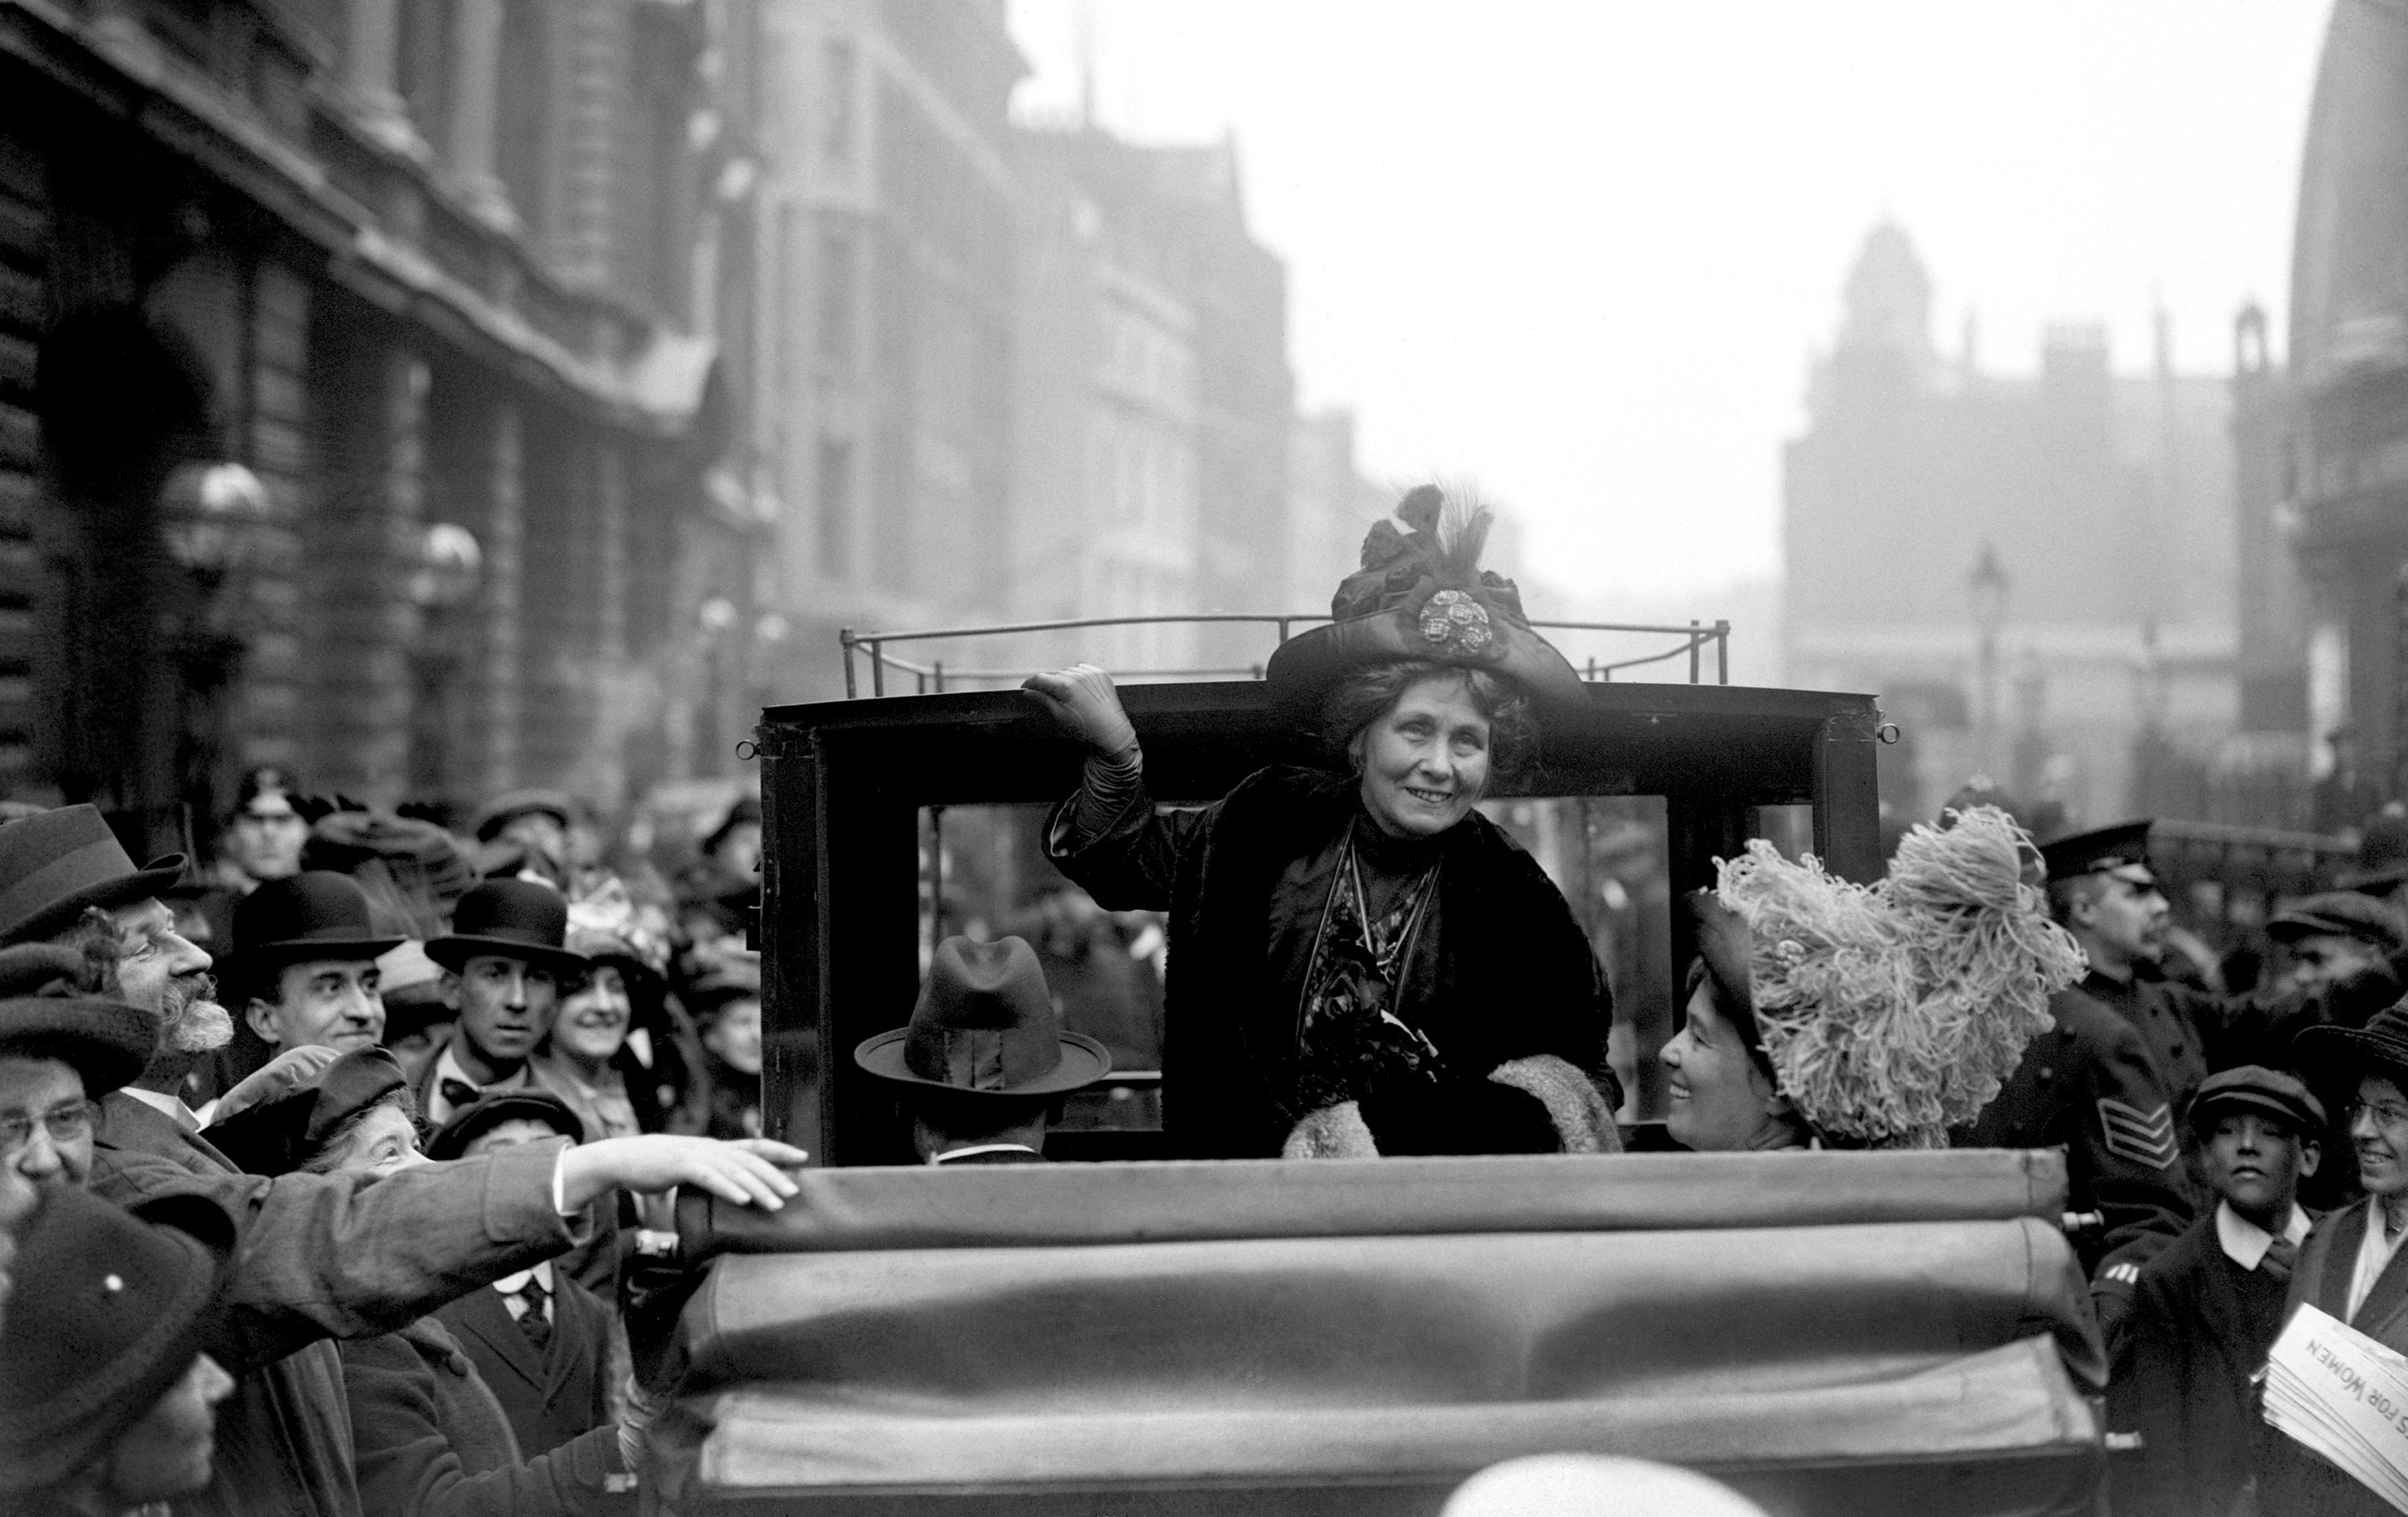 Founding member of the Women's Social and Political Union (WSPU) Emmeline Pankhurst in London,1912. (PA)